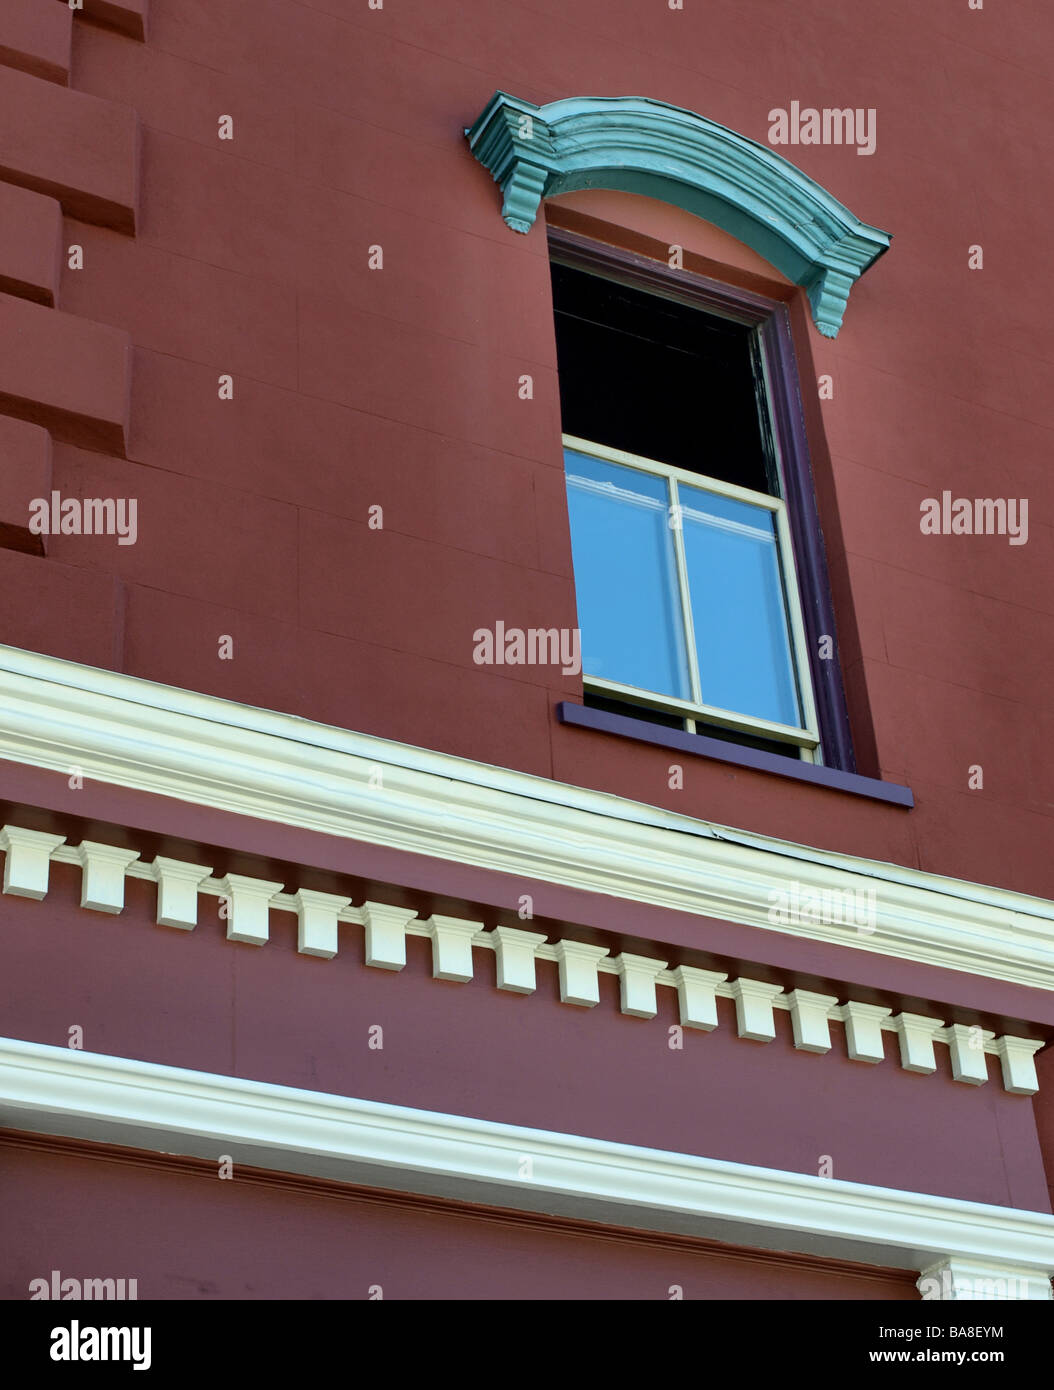 architectural detail orange wall with open window and tourquoise lentel and cream side molding on building, upward - Stock Image